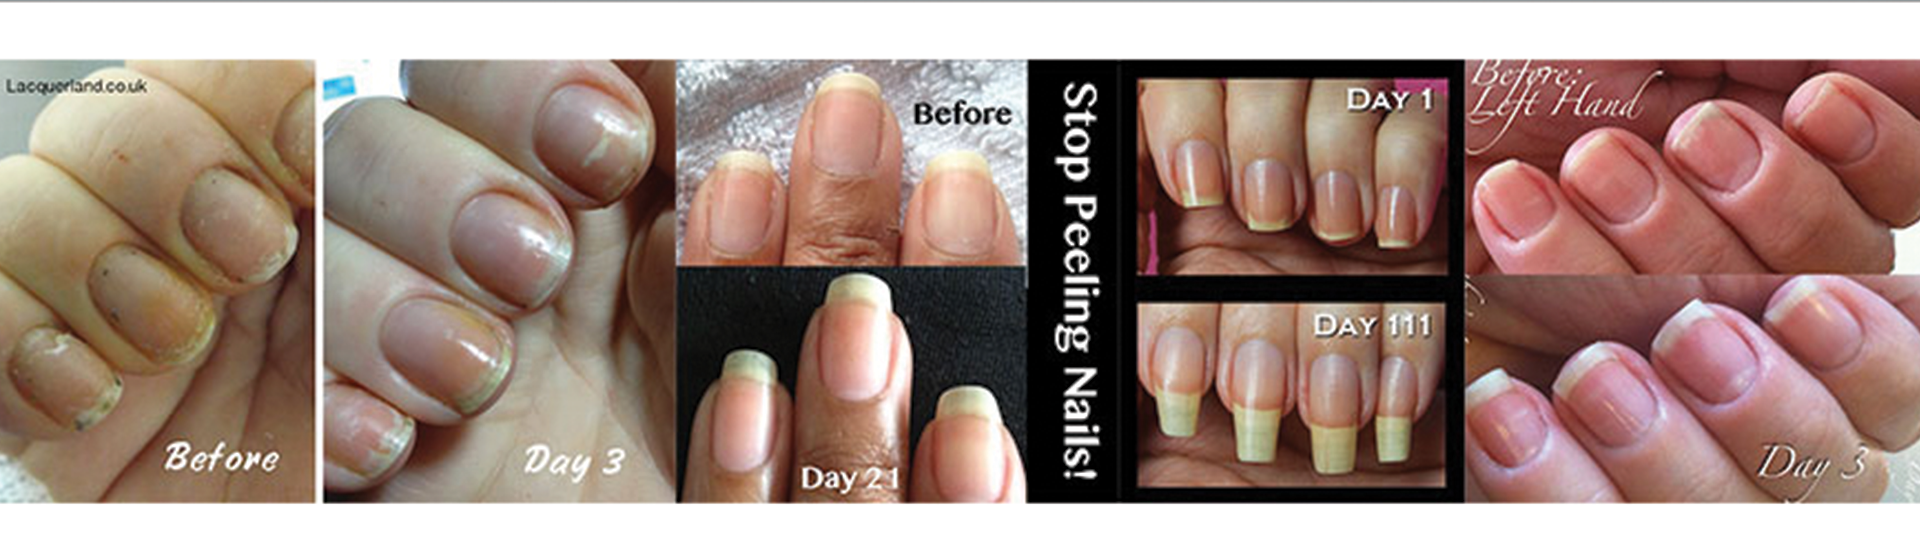 gnc-nails-before-and-after.png